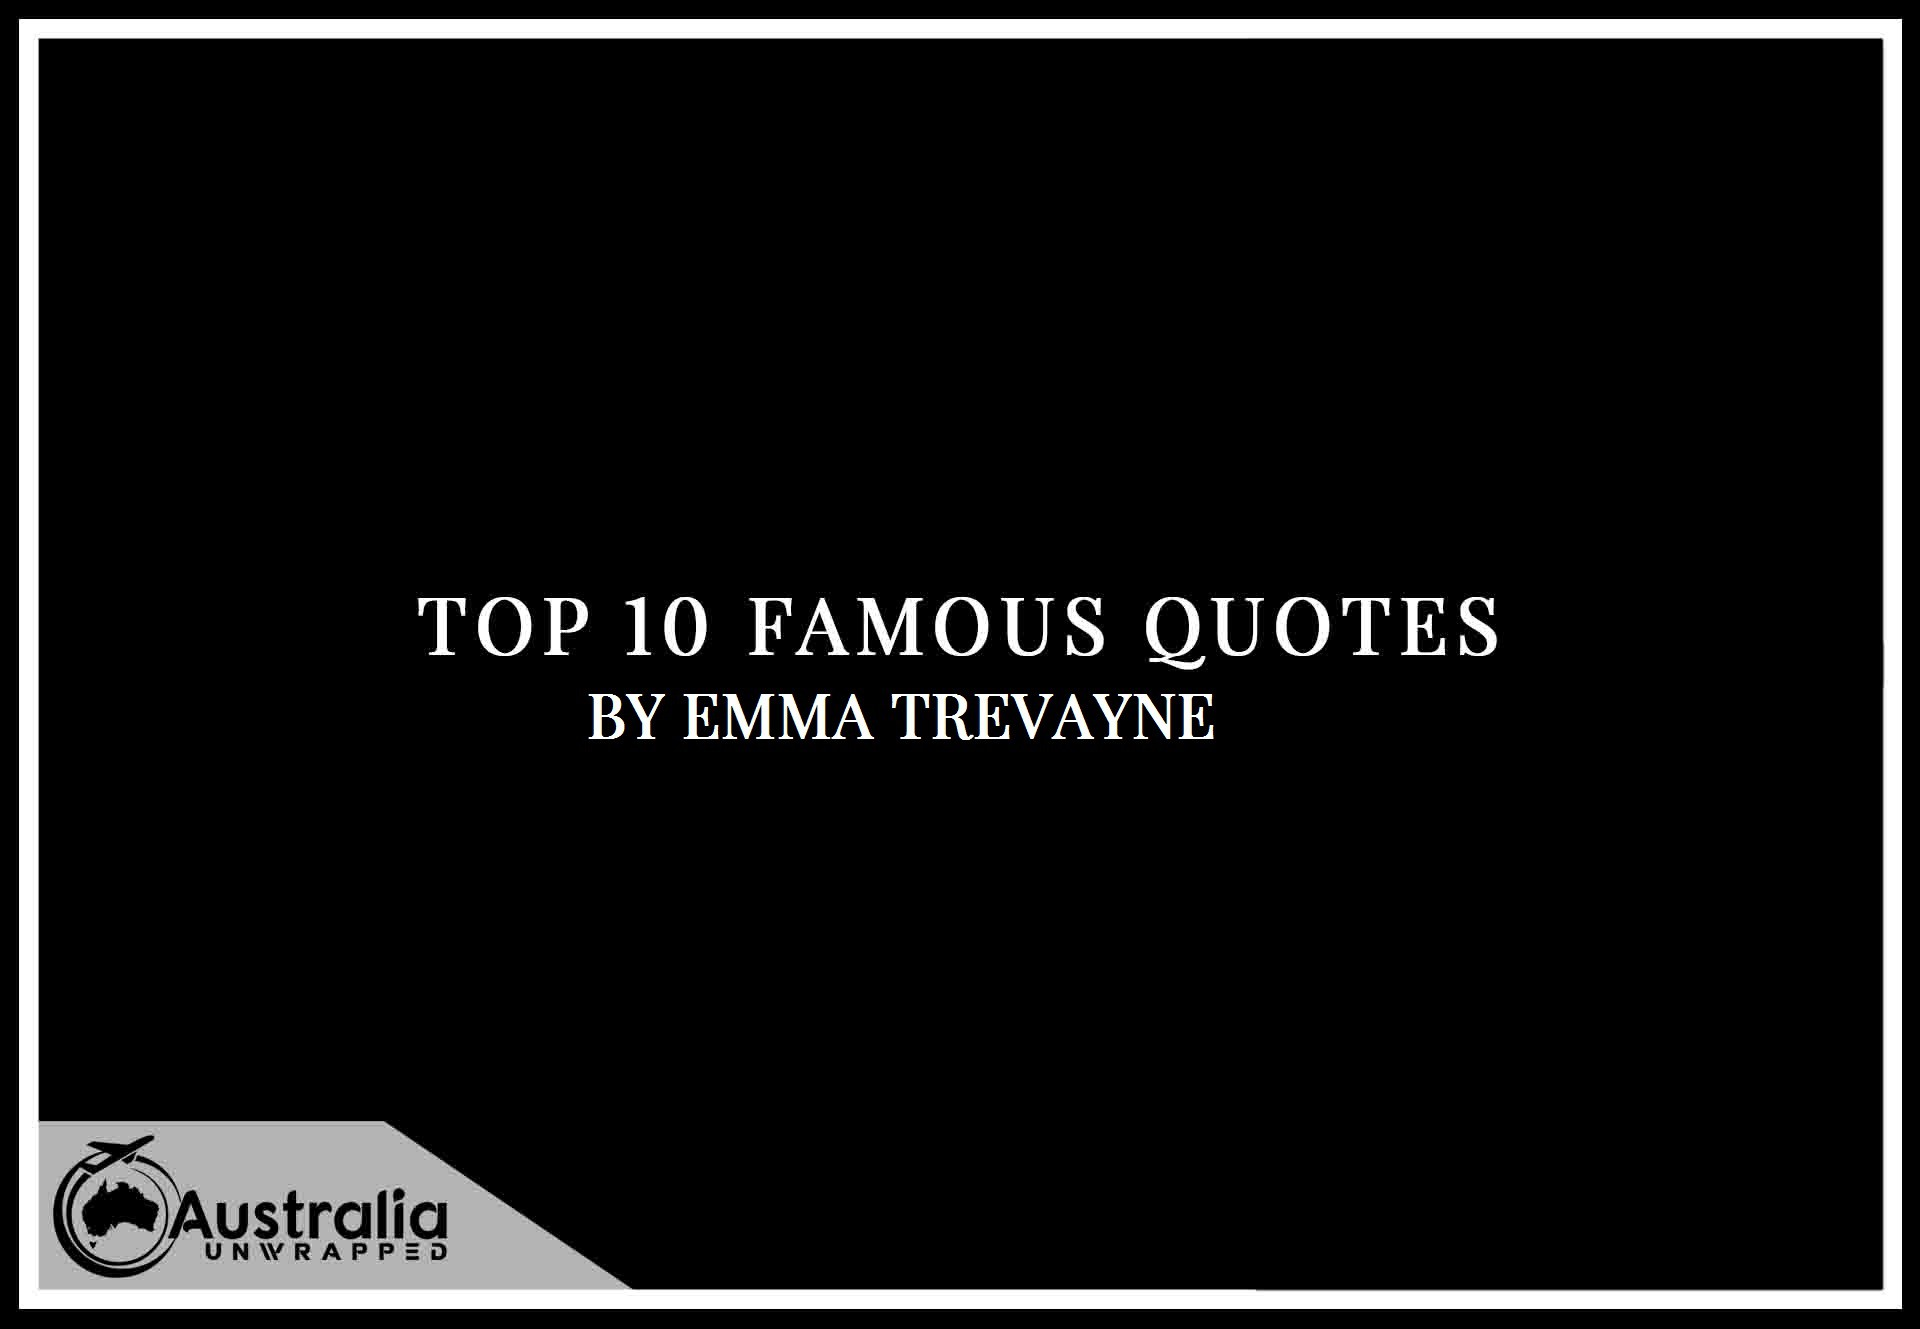 Emma Trevayne's Top 10 Popular and Famous Quotes